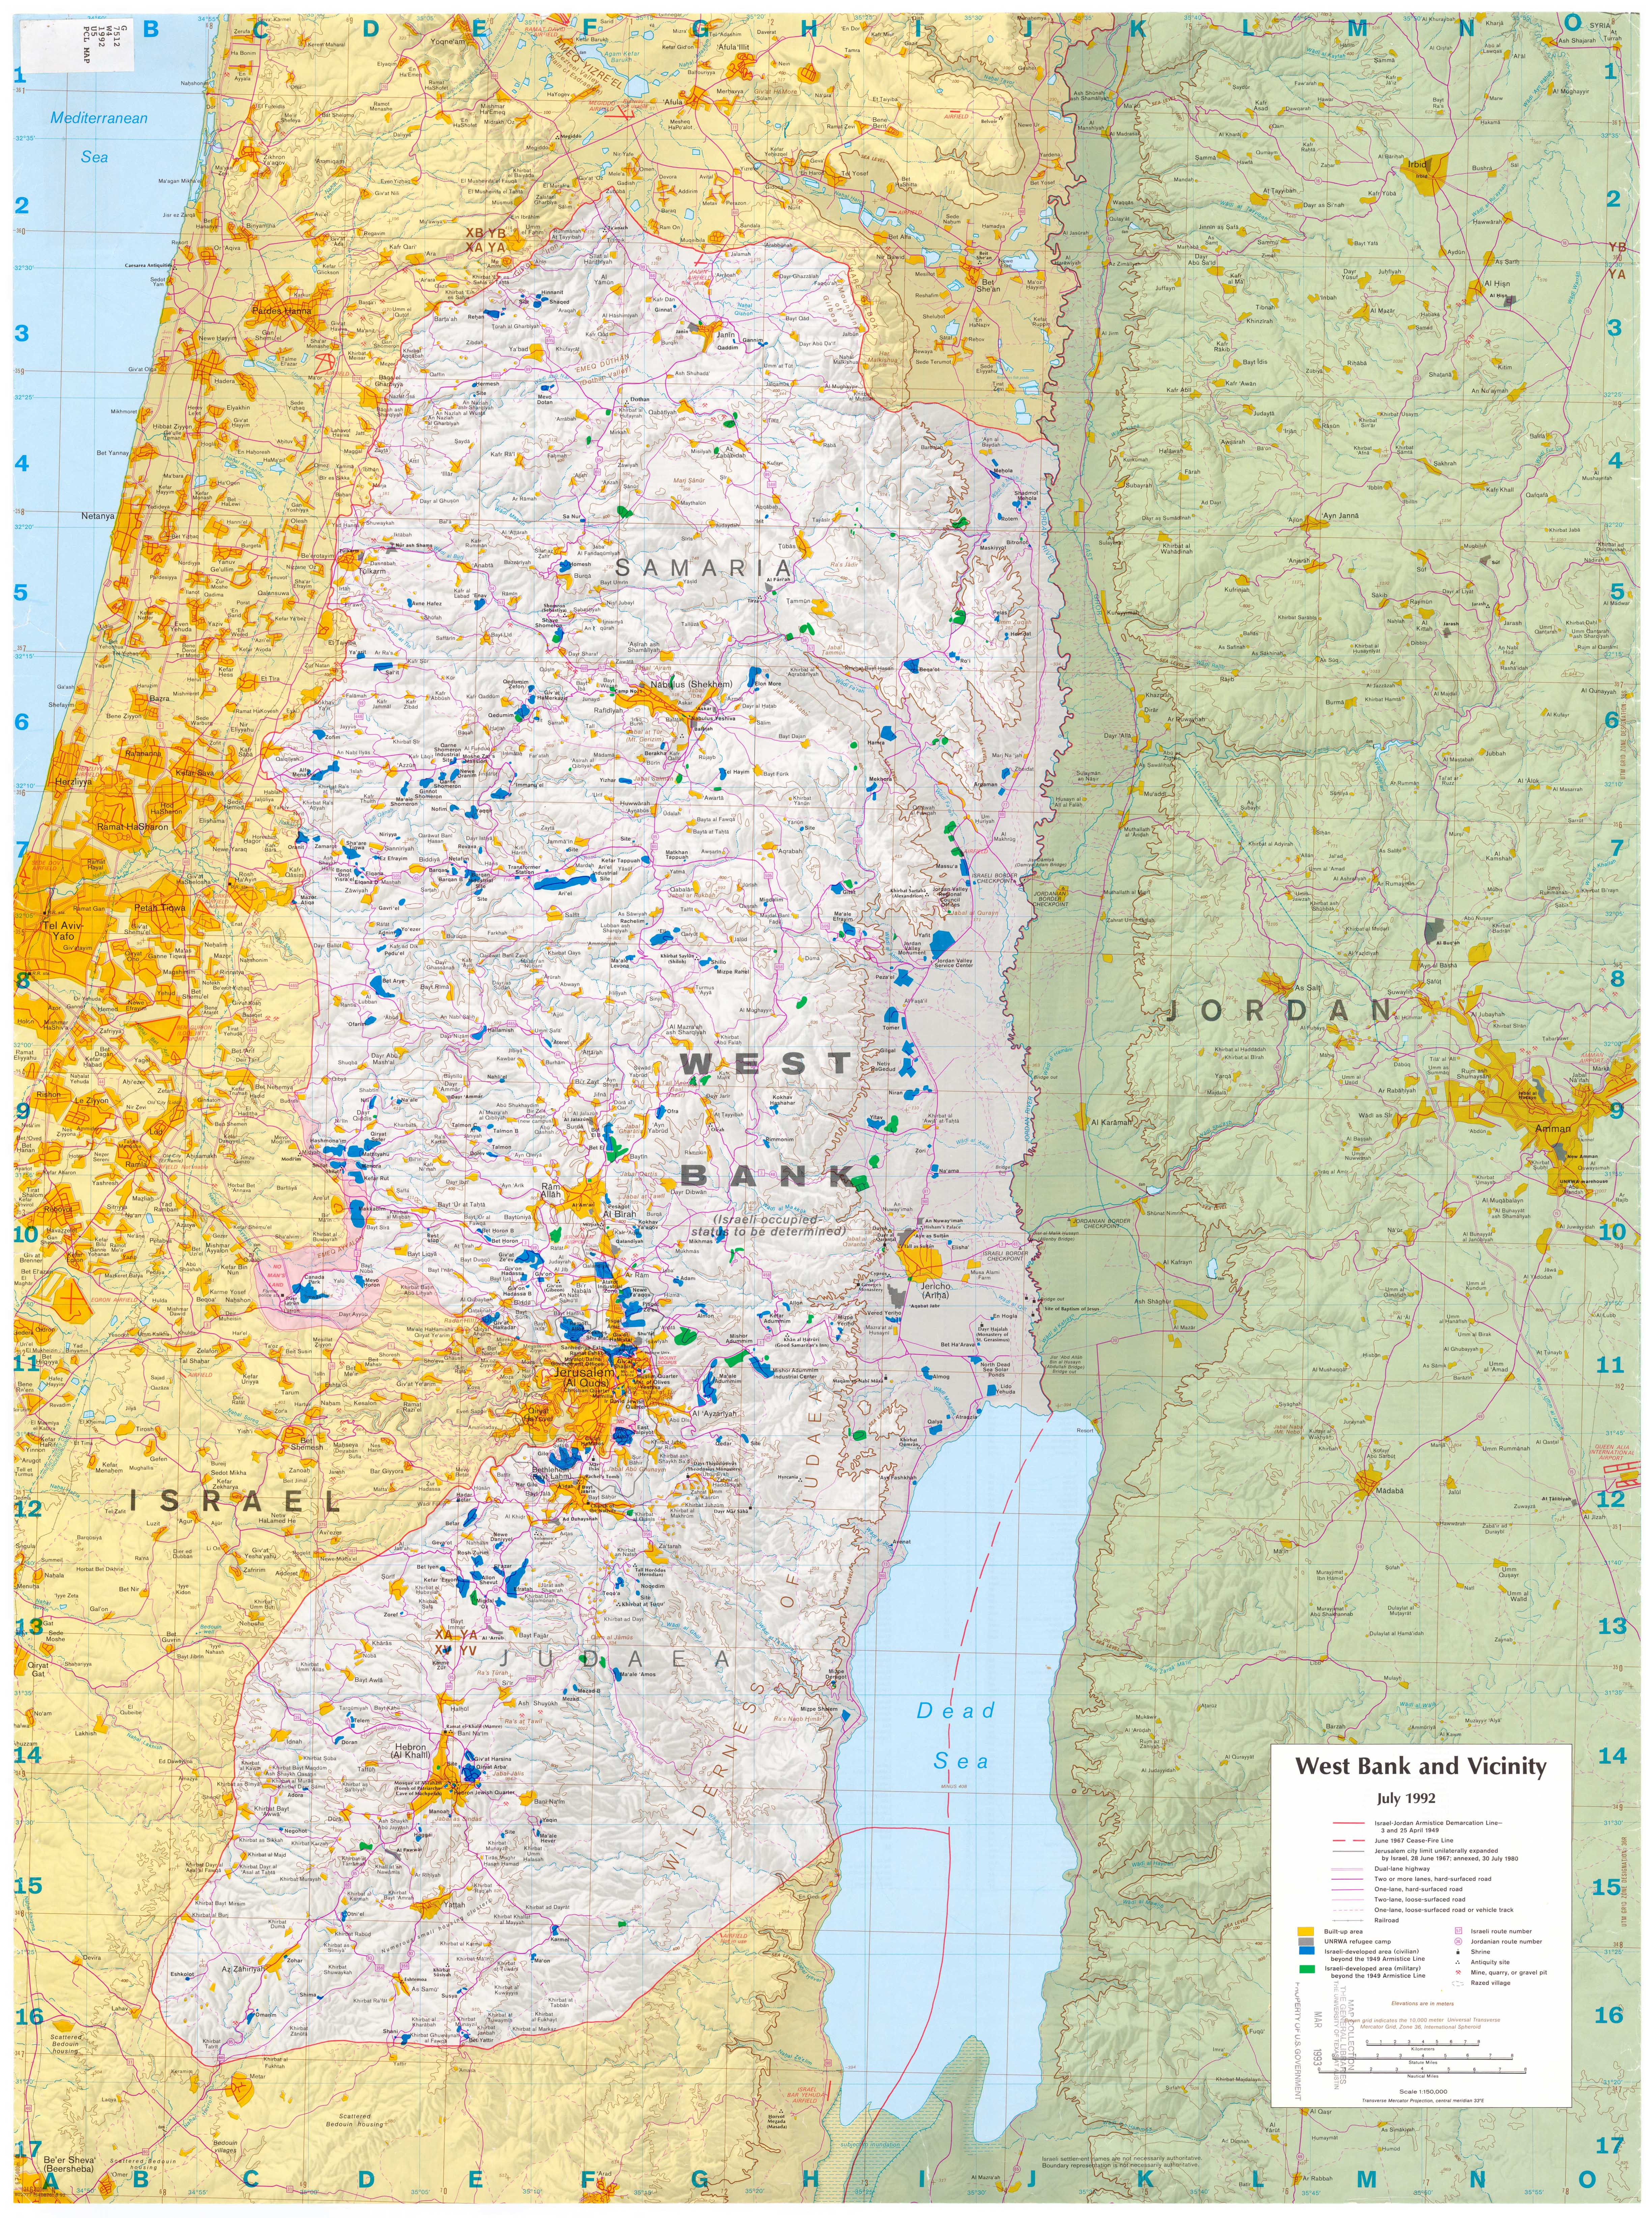 Israel Maps Perry Castaneda Map Collection Ut Library Online